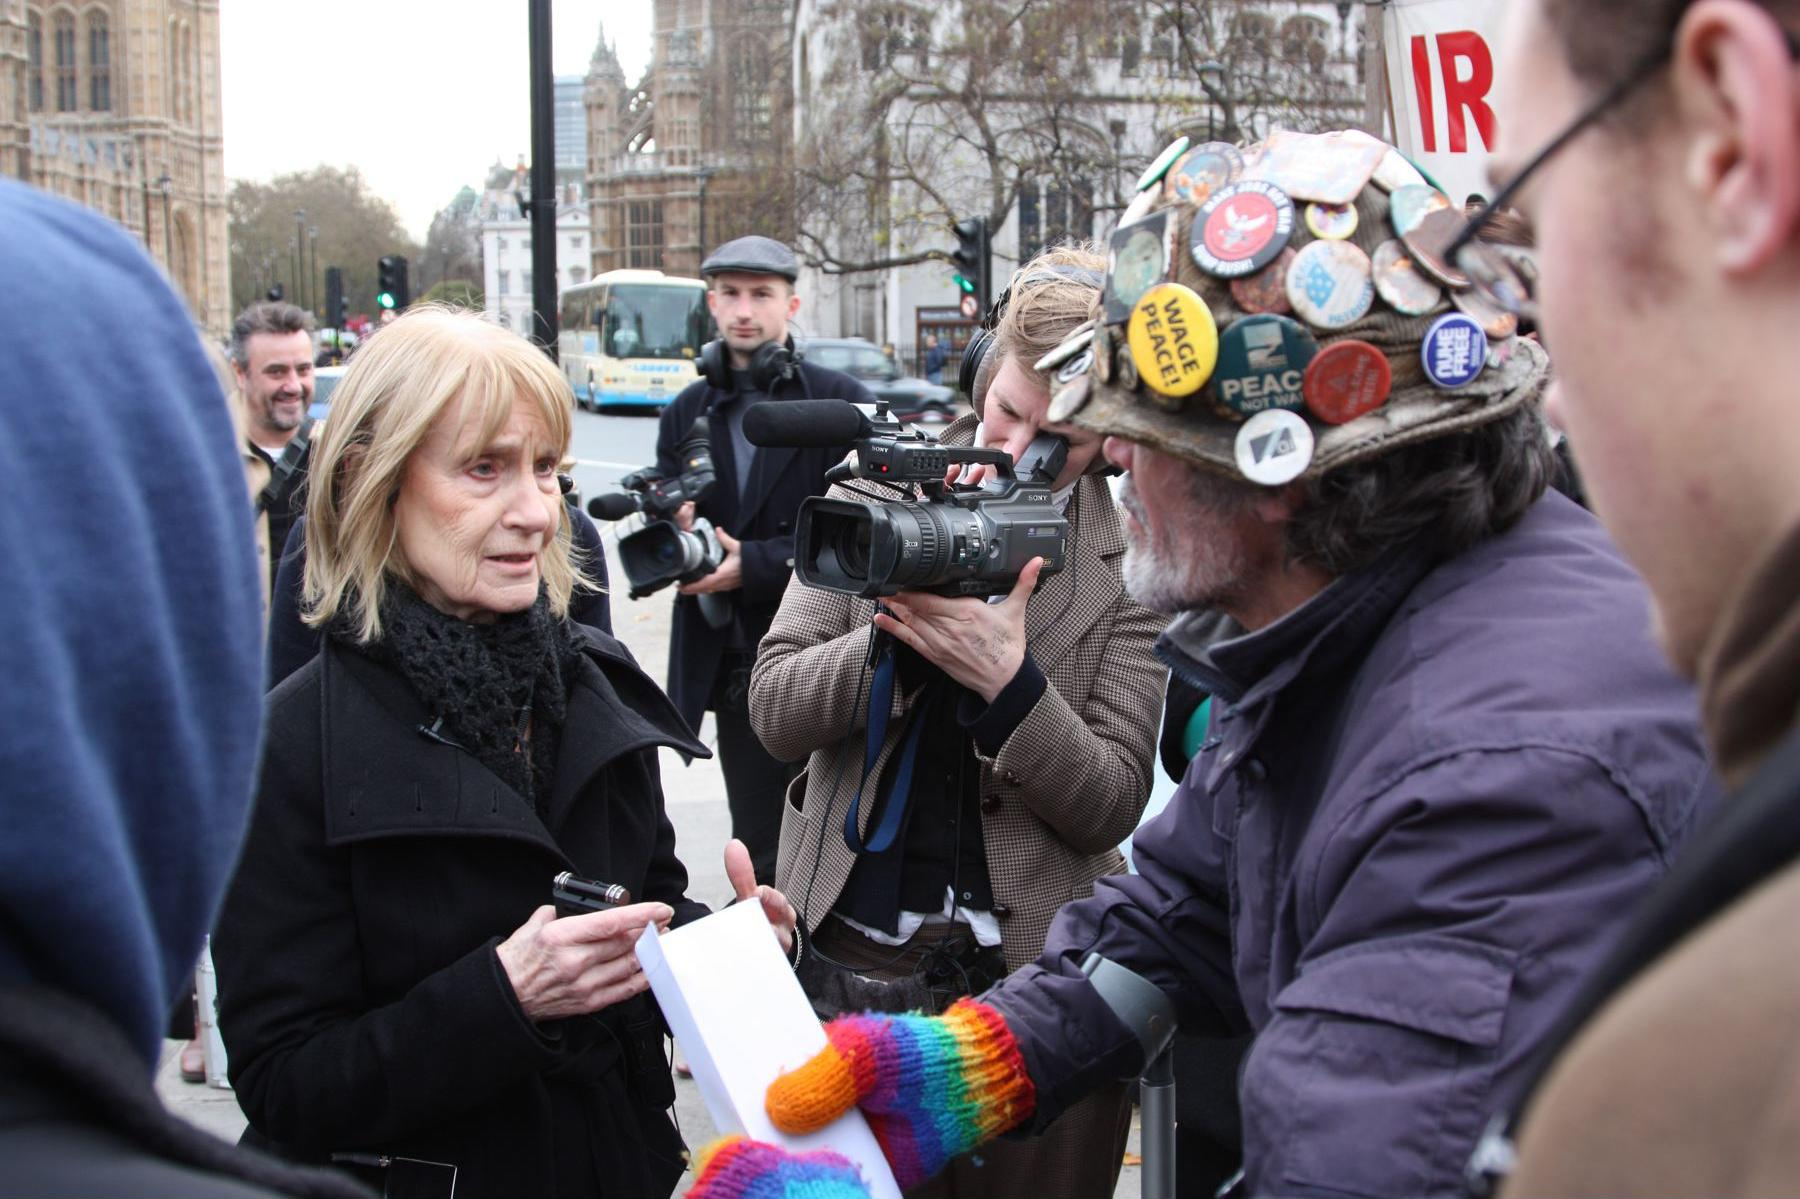 Barbara talking with Brian Haw, Peace Campaigner in Parliament Square. Westminster Walk, November 2008. Photo © John Mallinson (A TRIBUTE TO BARBARA STEVENI BY LAURE PROUVOST 0)